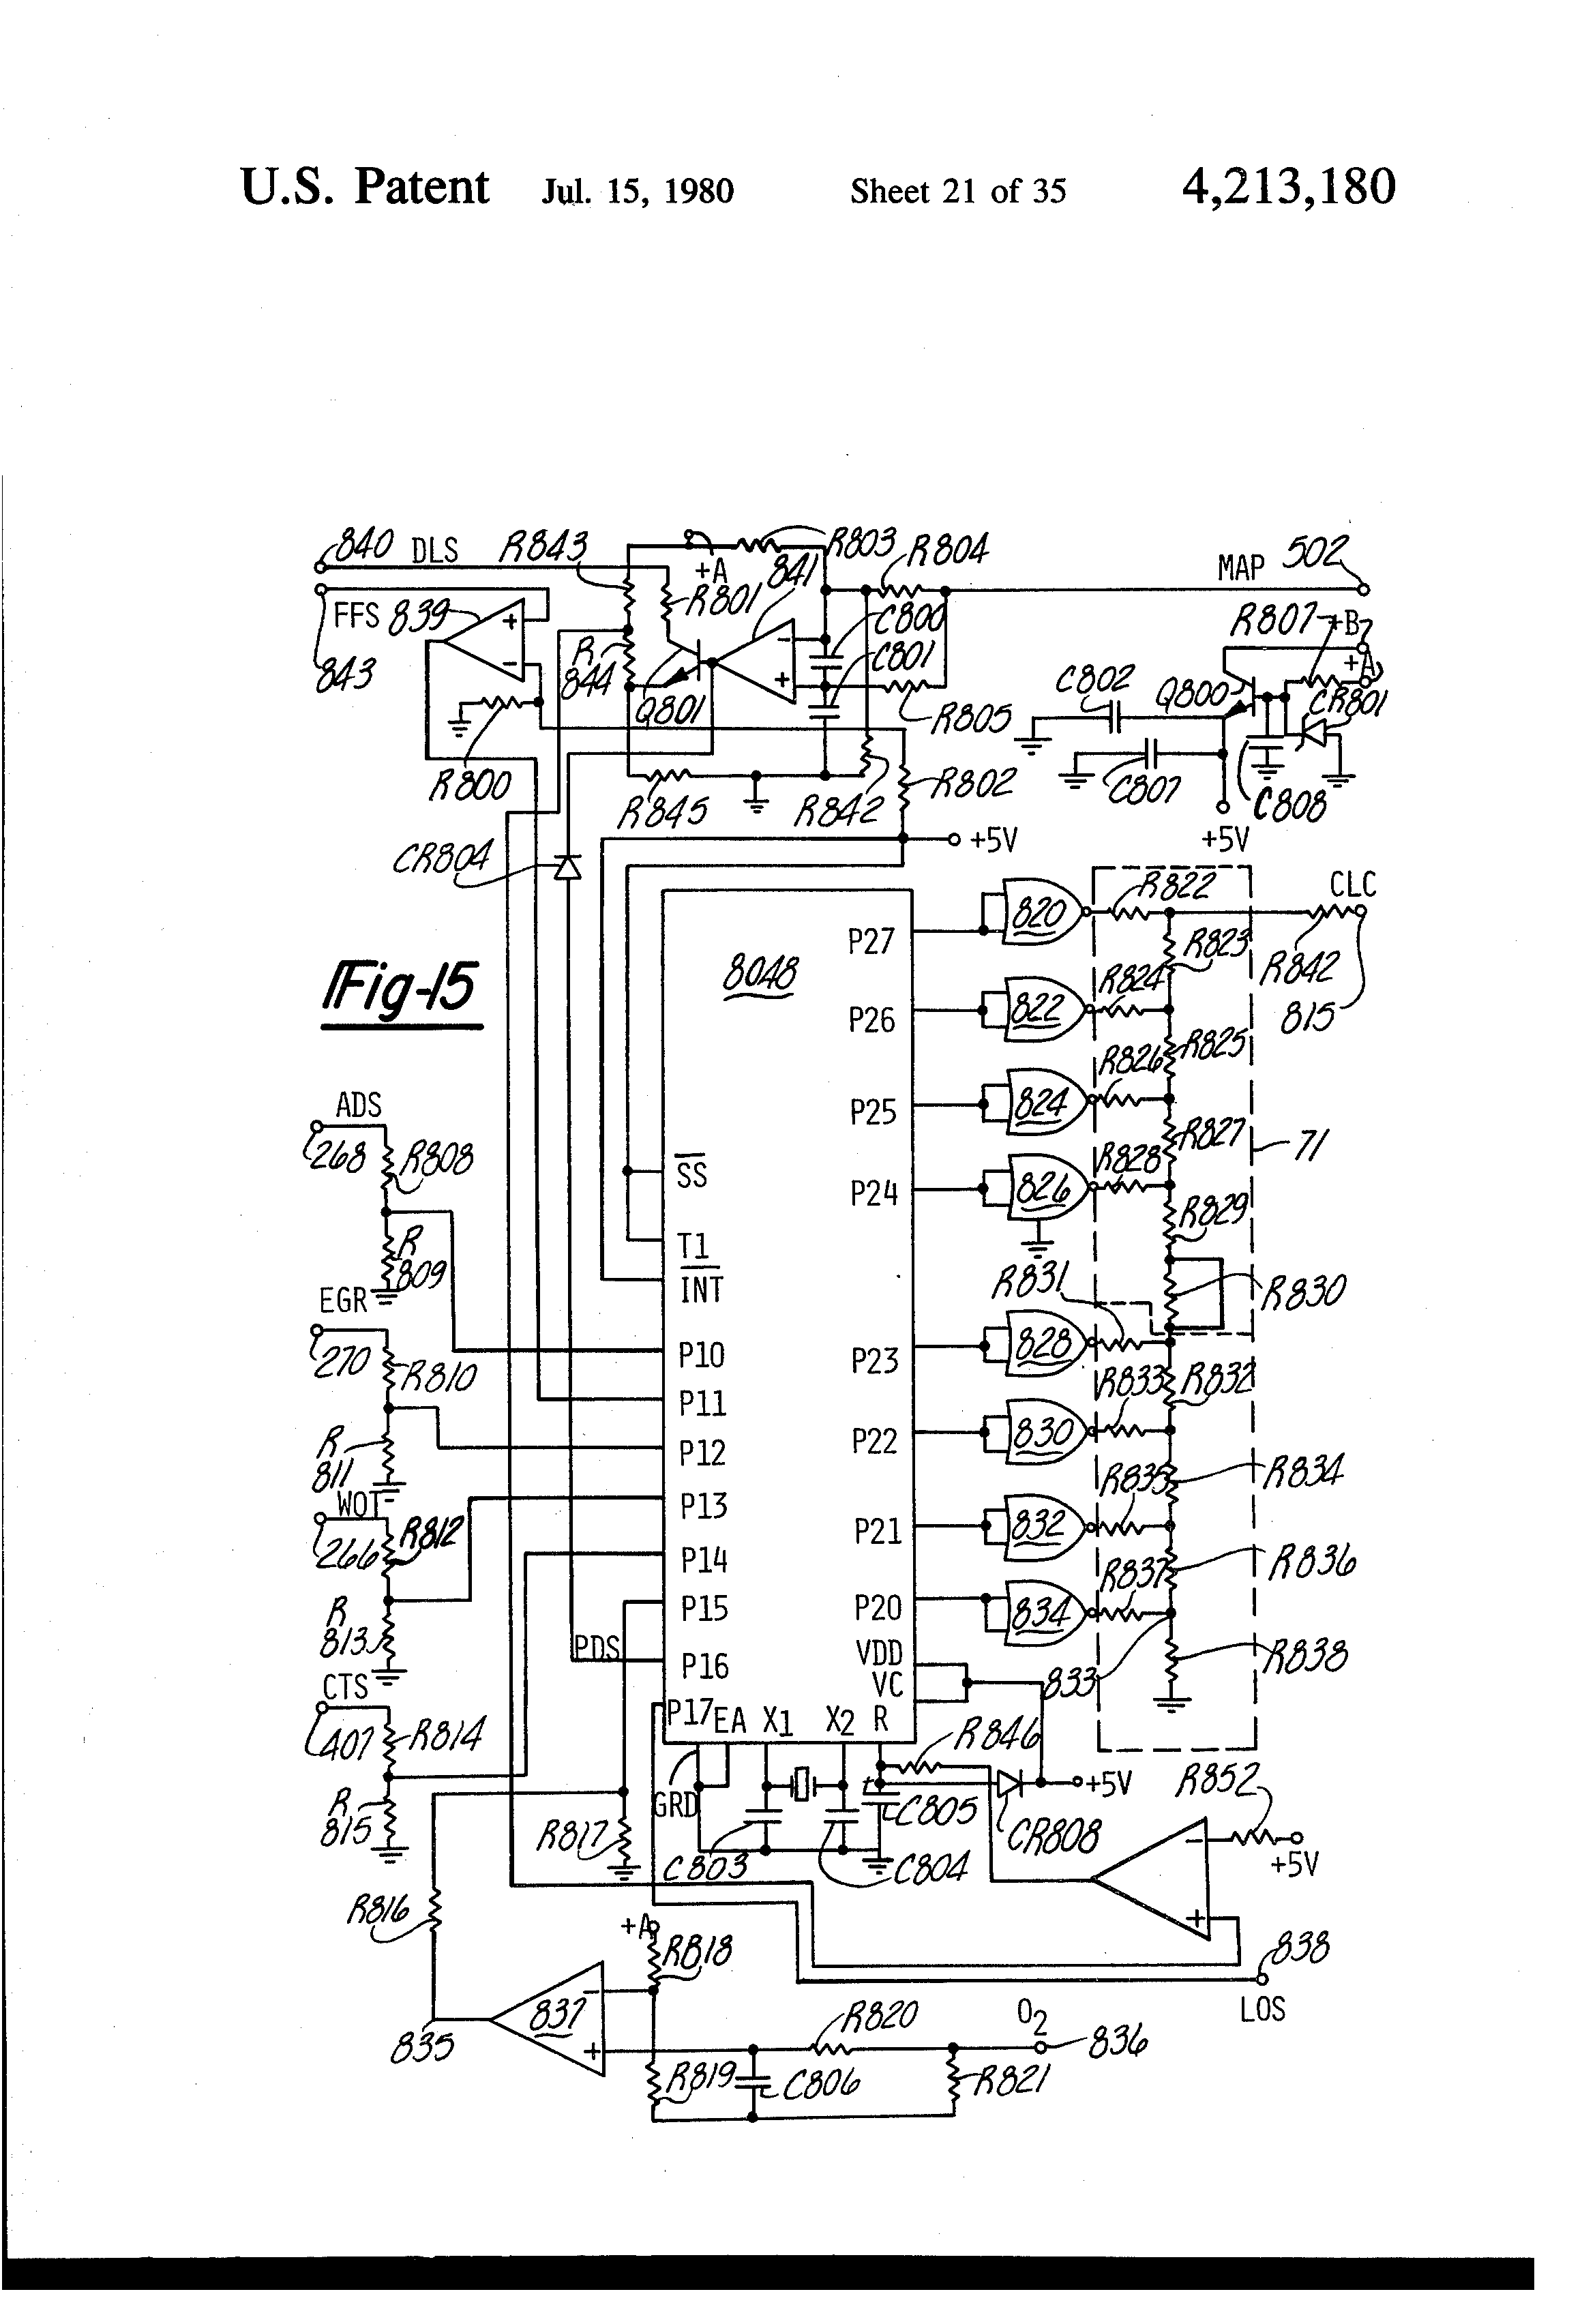 1984 Honda 700 Shadow Wiring Diagram Electrical Diagrams 1983 Vt750 750 Page 2 And Schematics 83